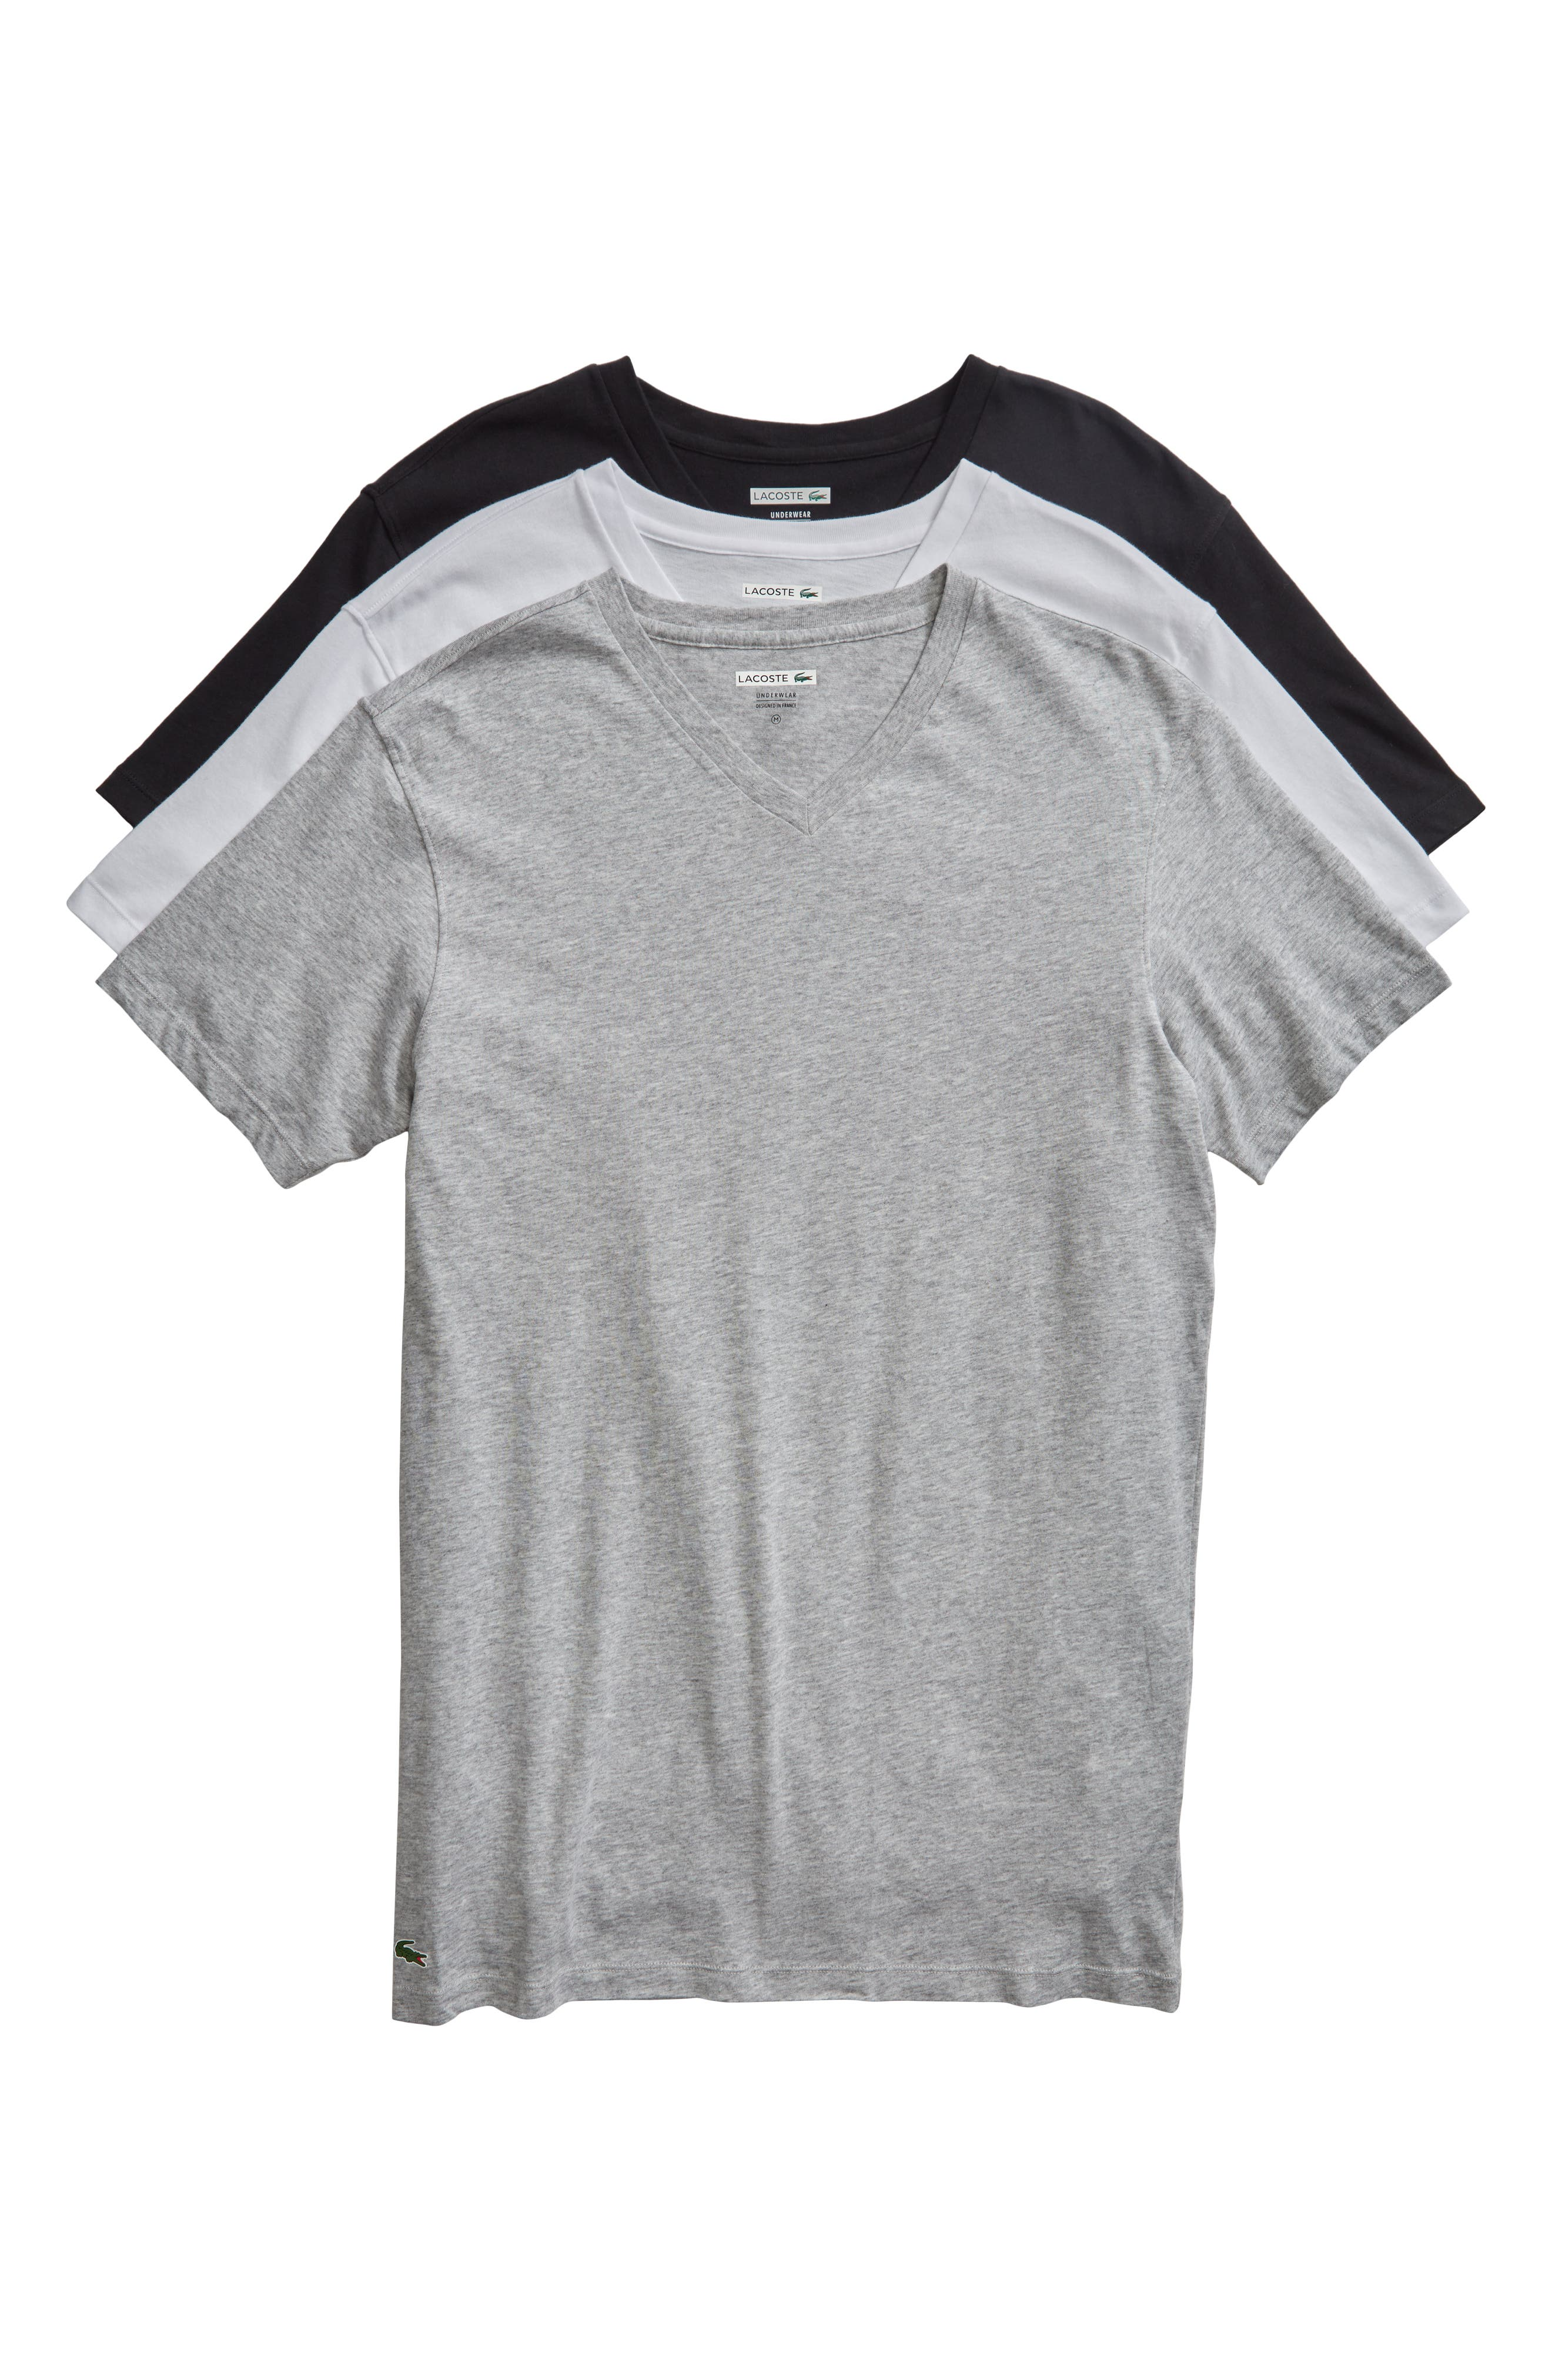 Assorted 3-Pack Supima<sup>®</sup> Cotton V-Neck T-Shirts,                             Main thumbnail 1, color,                             Black/ Grey/ White